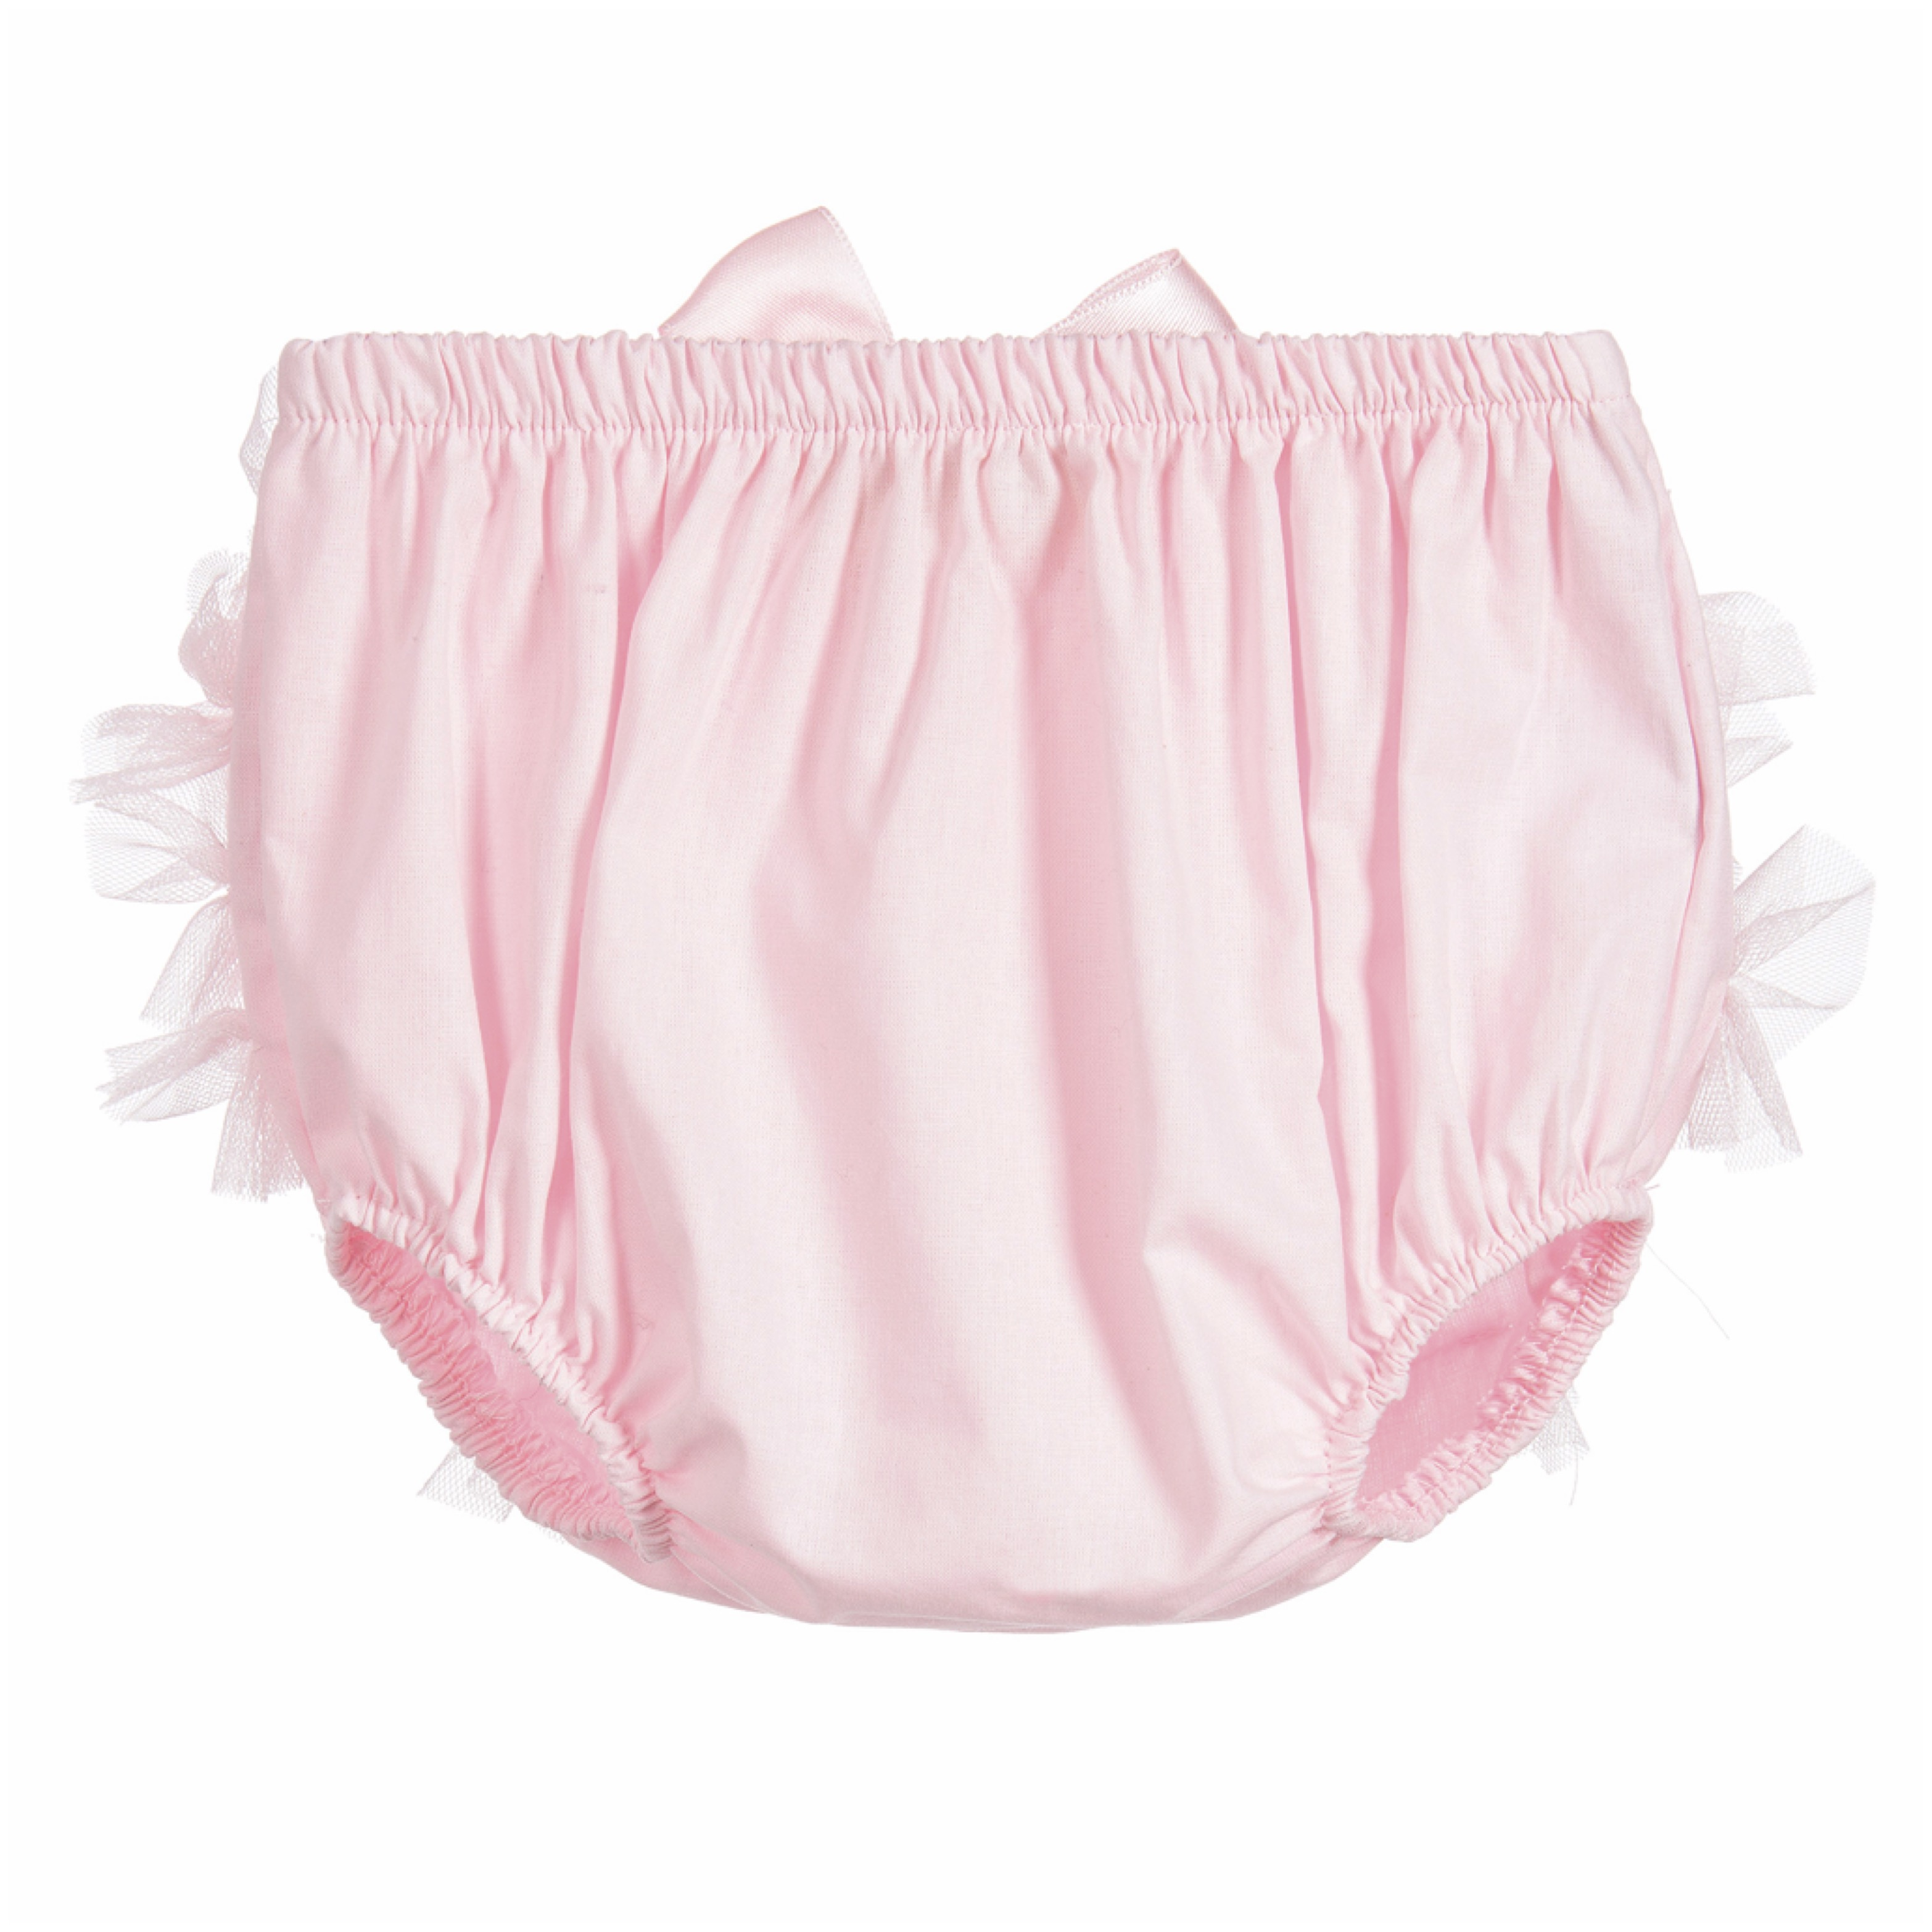 Couche Tot Tutu Knickers, Pink